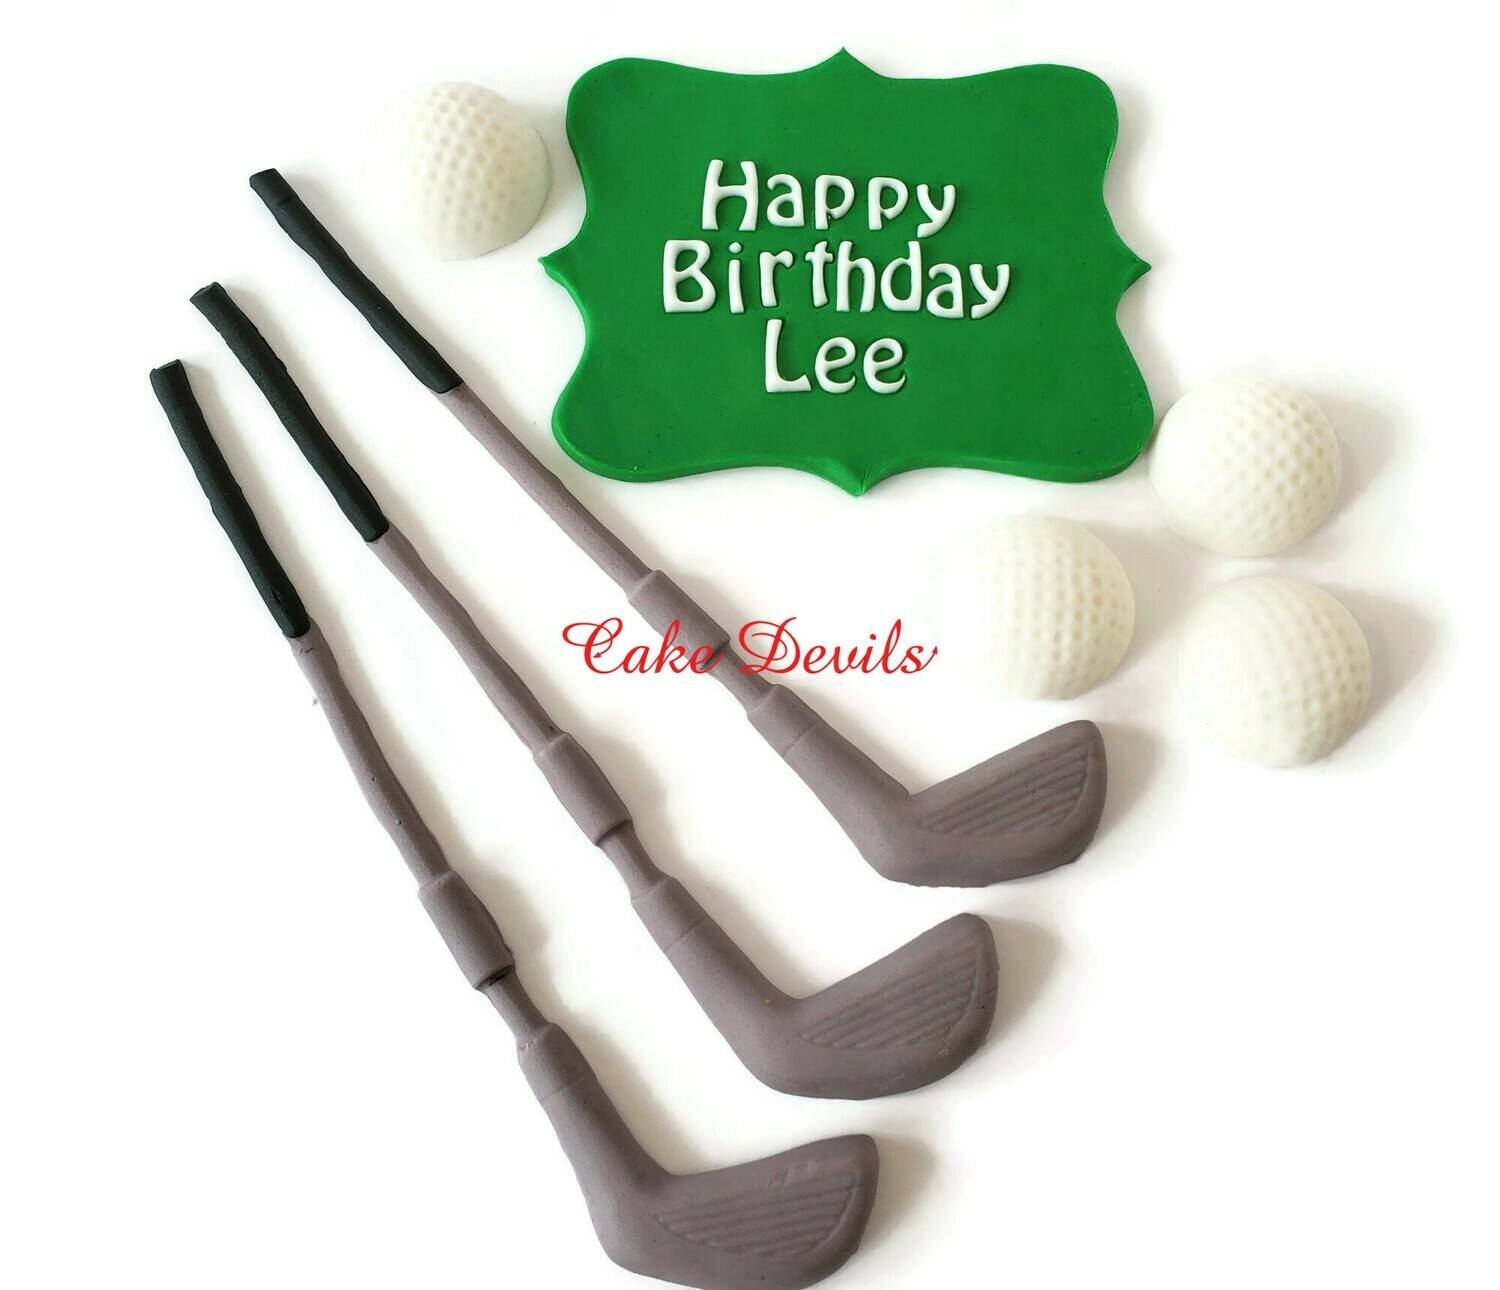 Fondant Golf Cake Topper Kit with golf clubs and balls